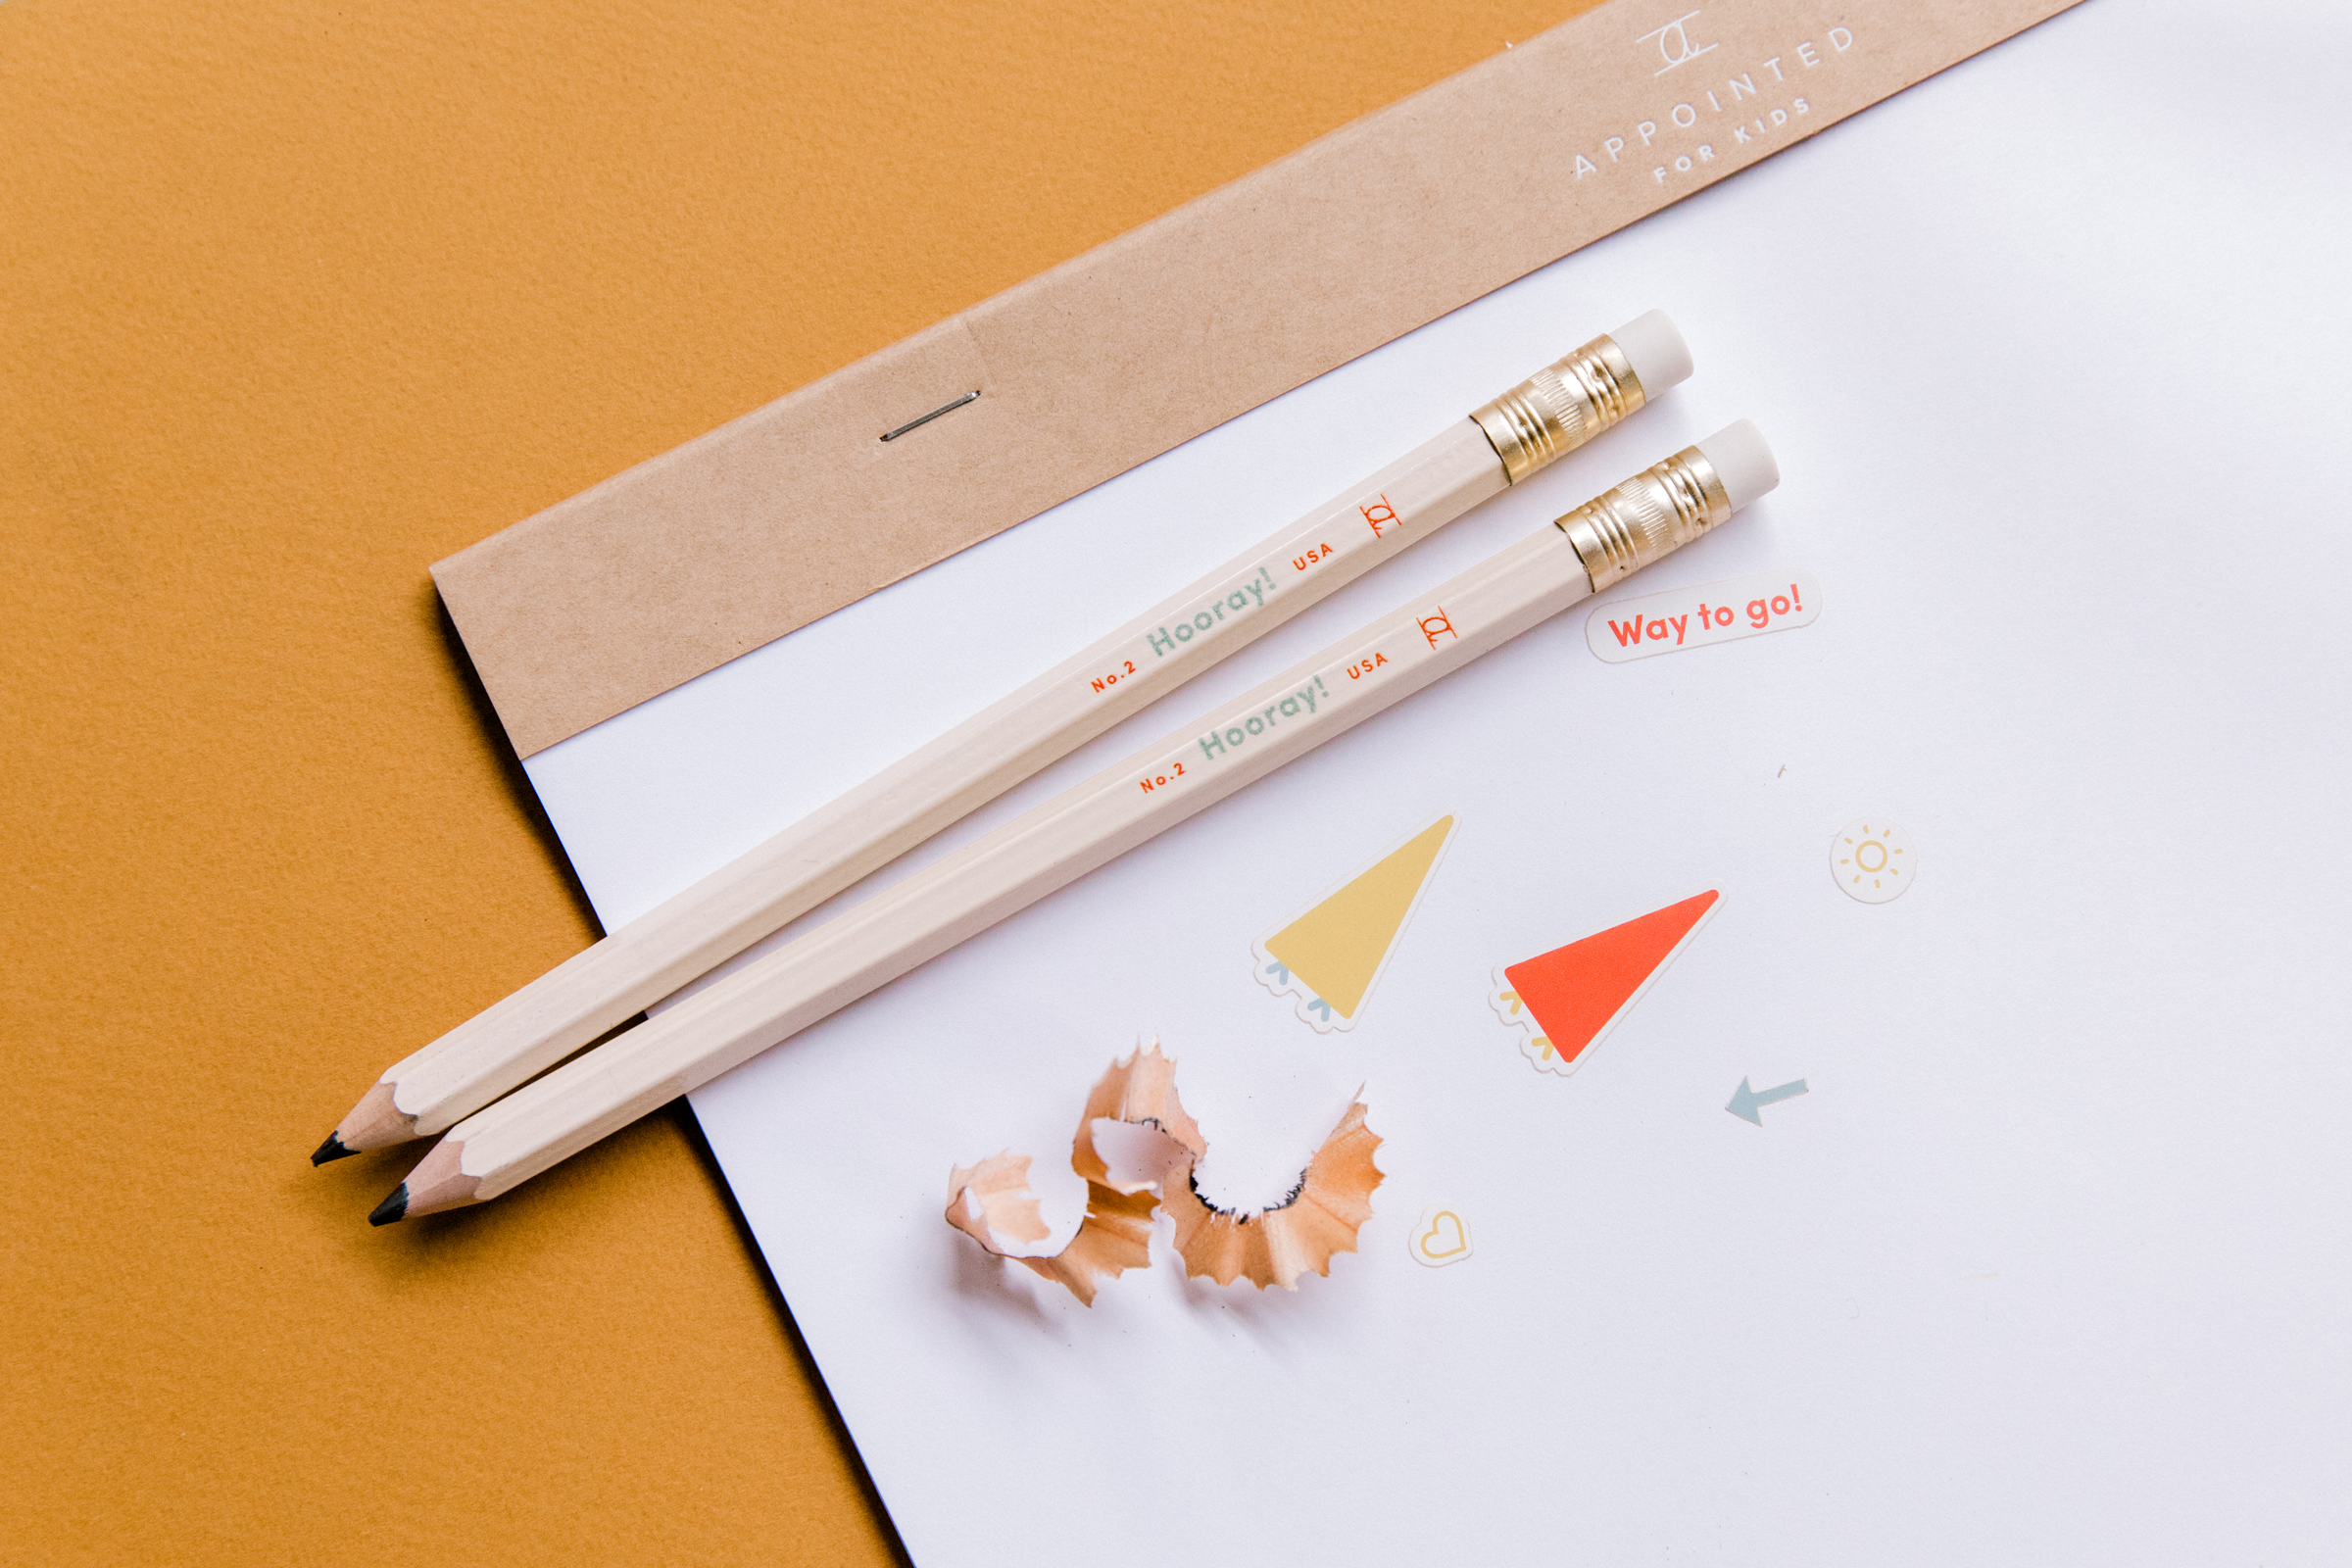 Discover APpointed for kids - Come in and try out their Jumbo Sketchpad for Kids for a limited time at Nook Mosaic and Nook Ballston Quarter.